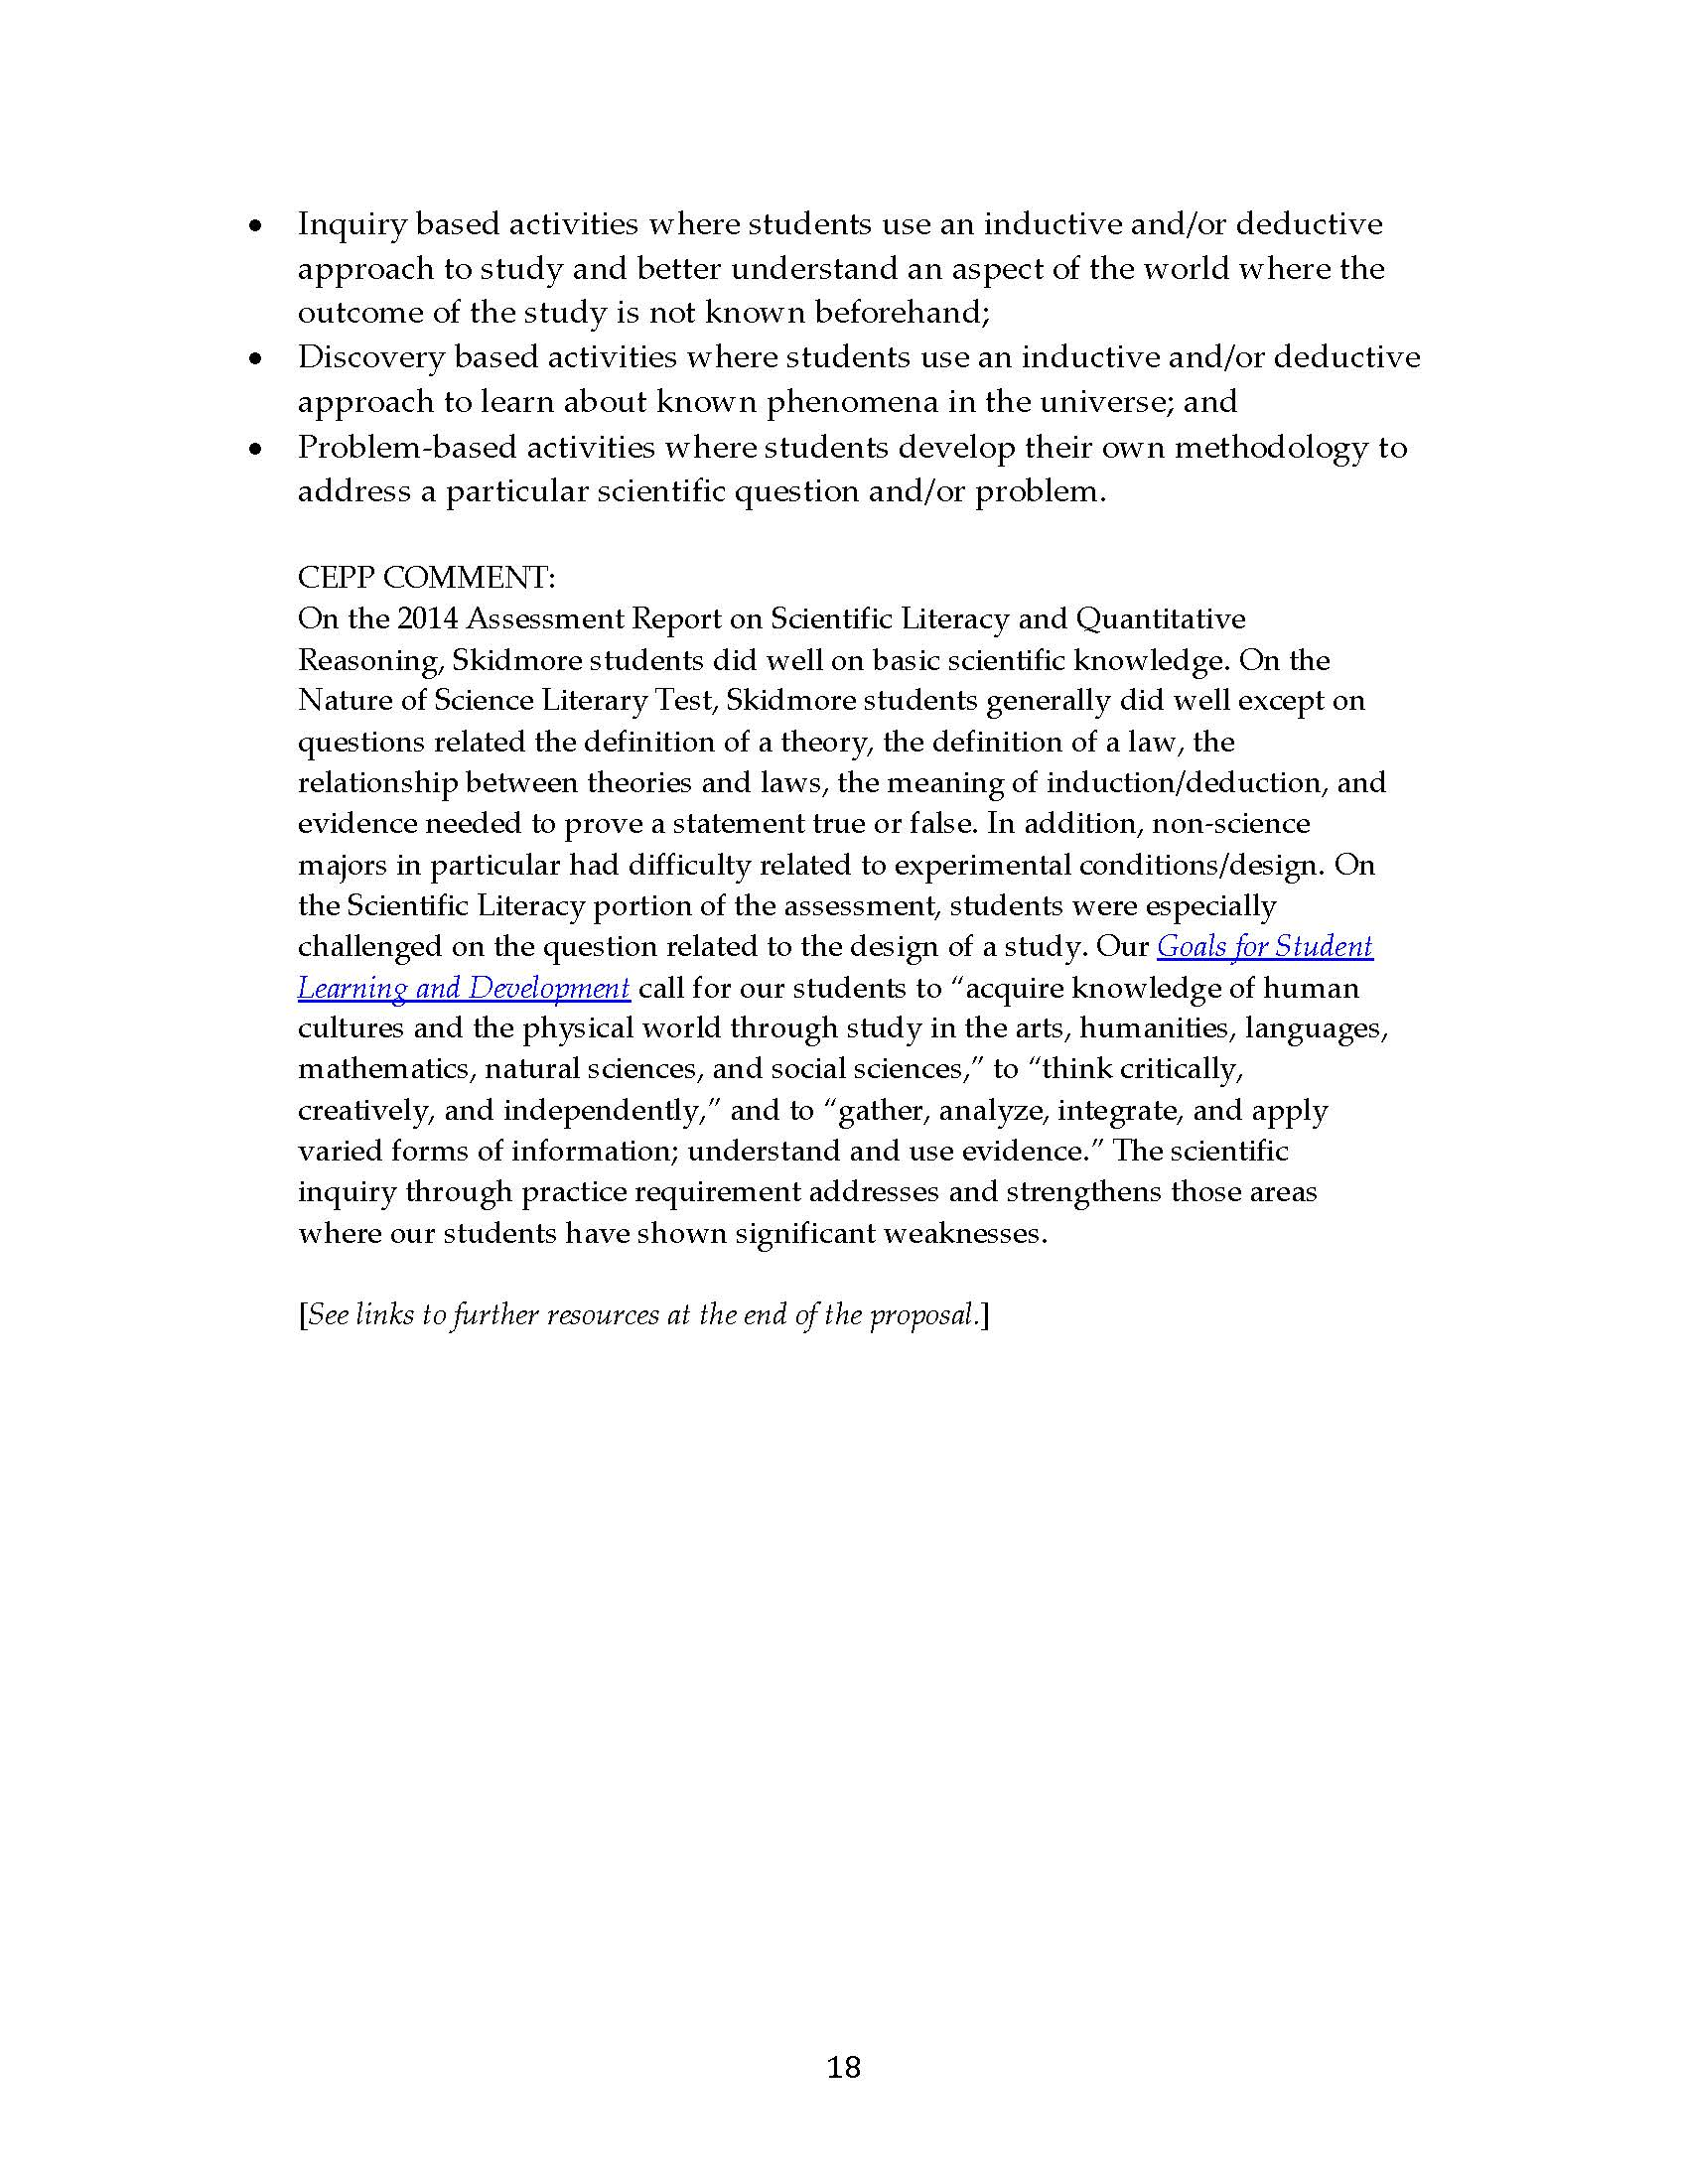 General Education Proposal February 28 2017_Page_18.jpg